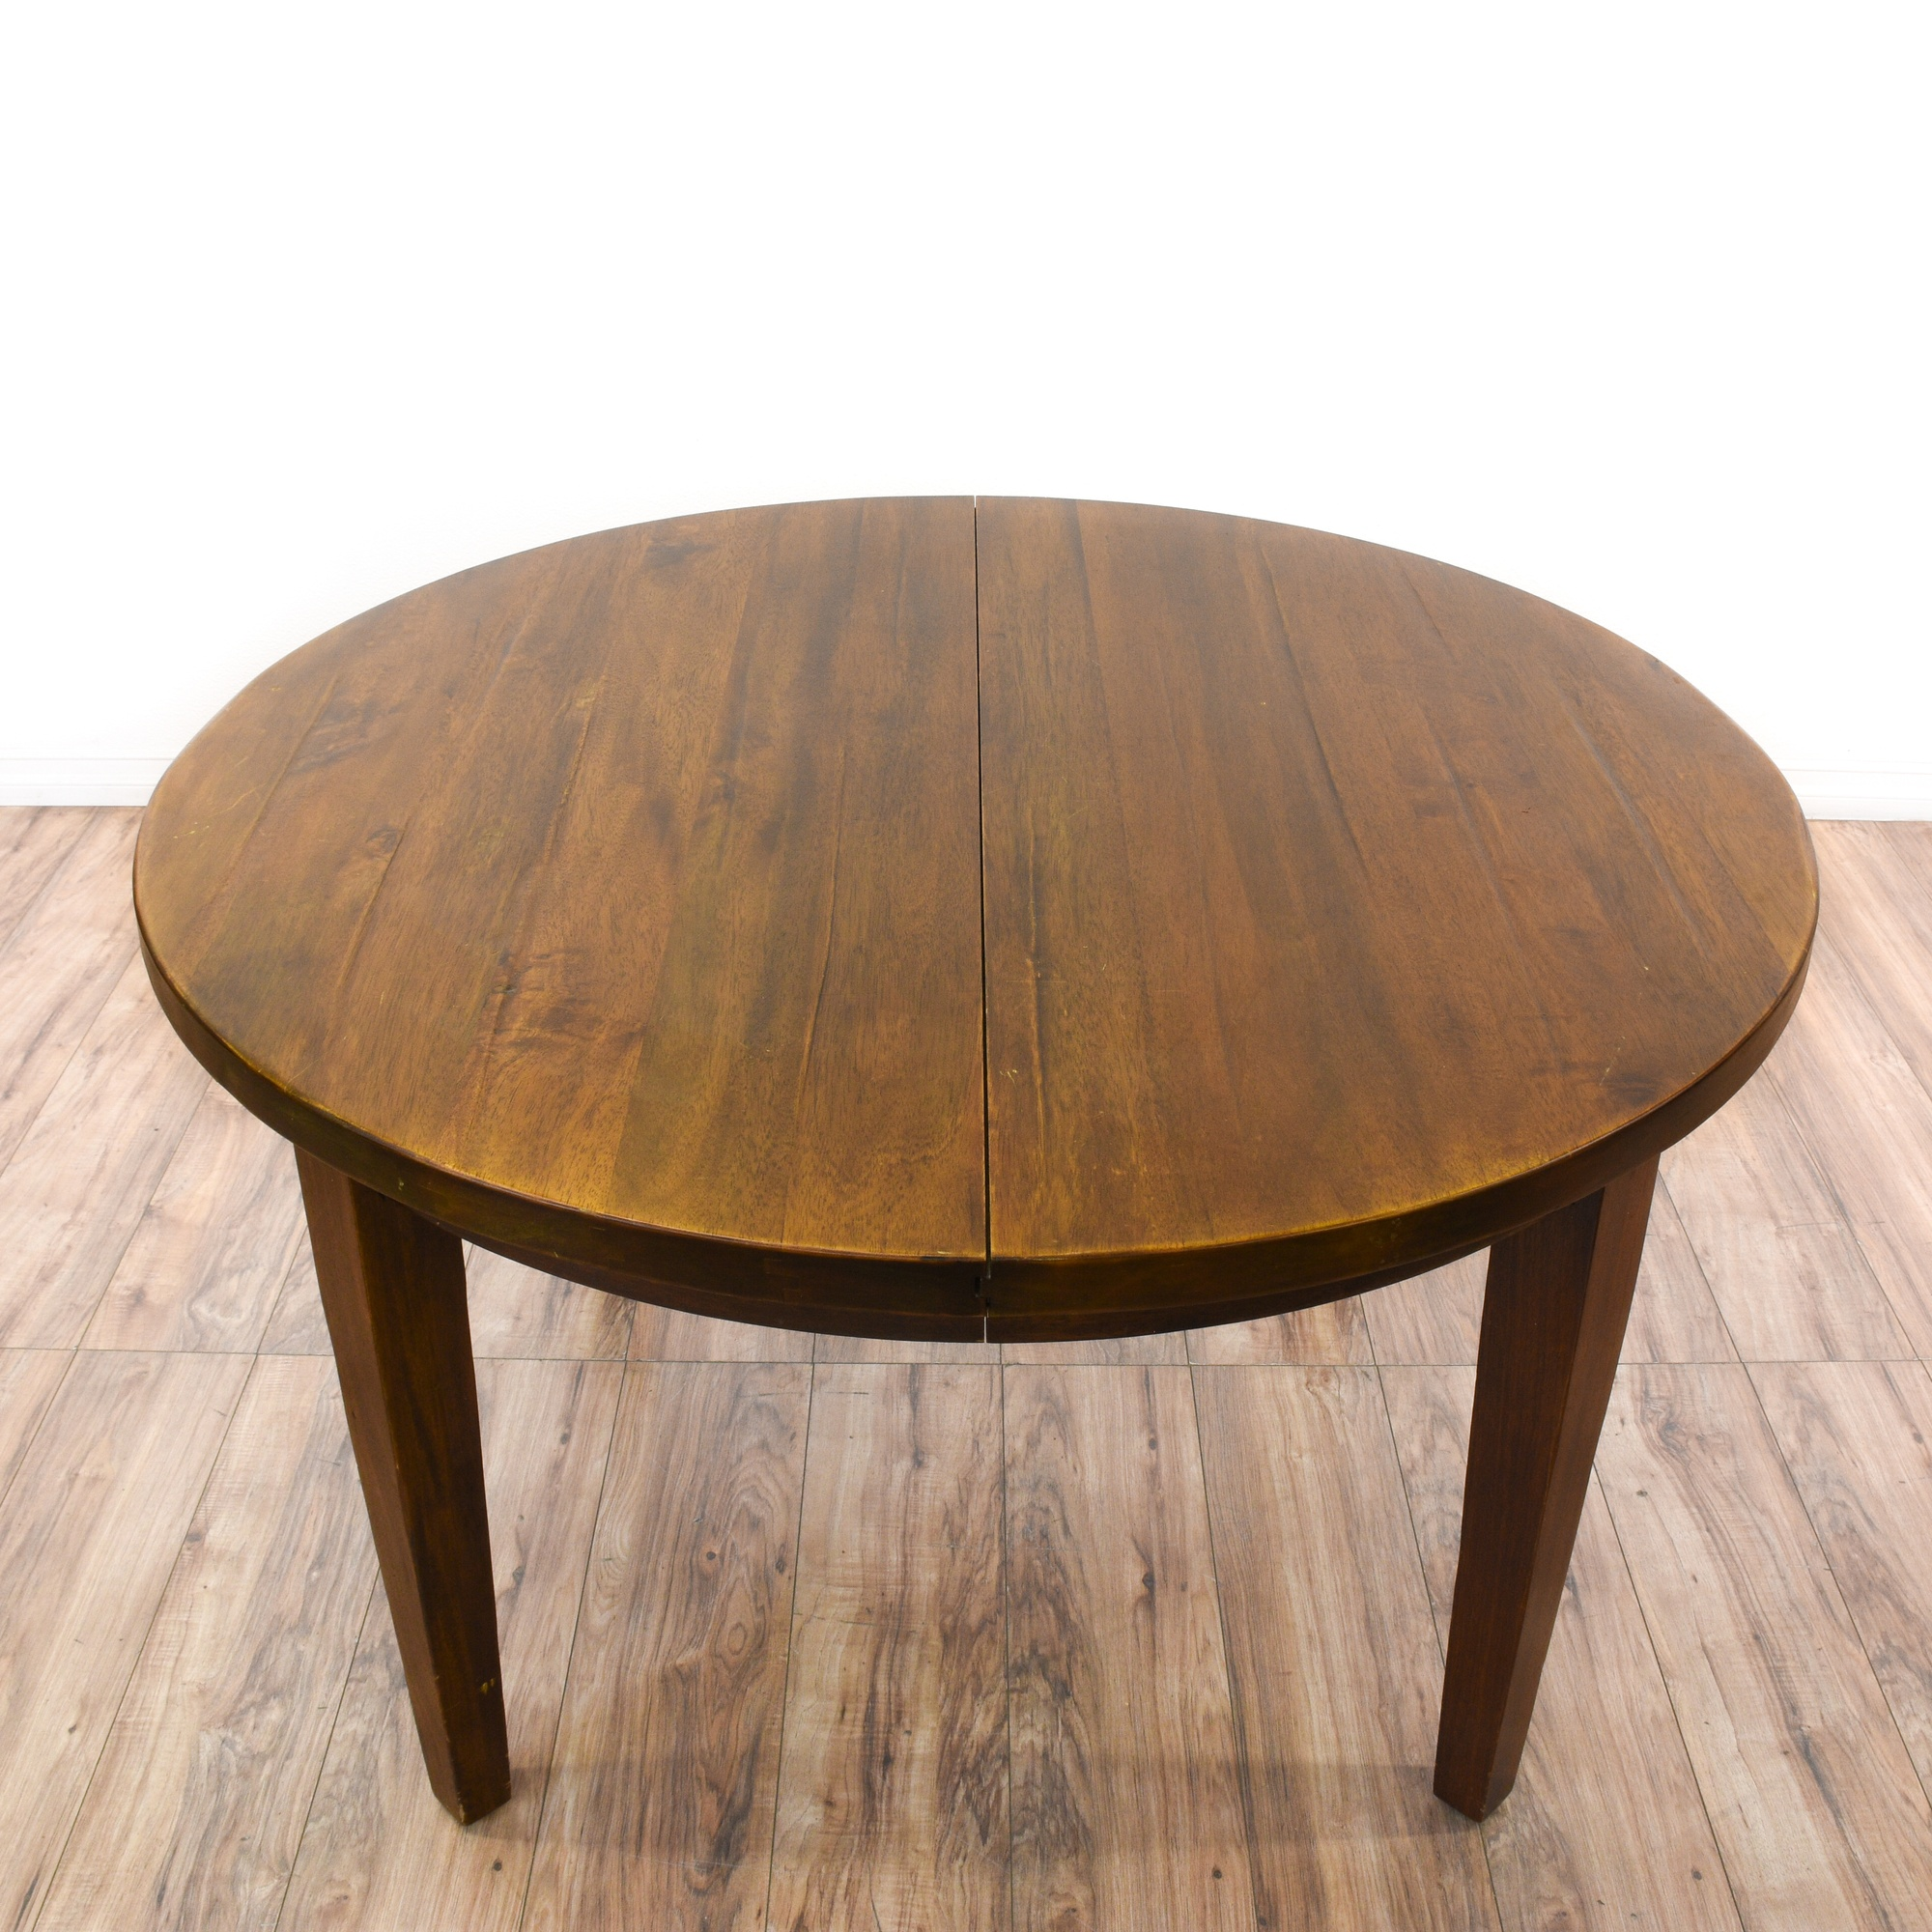 Round solid wood dining table w 2 leaves loveseat for Solid wood round dining table with leaf